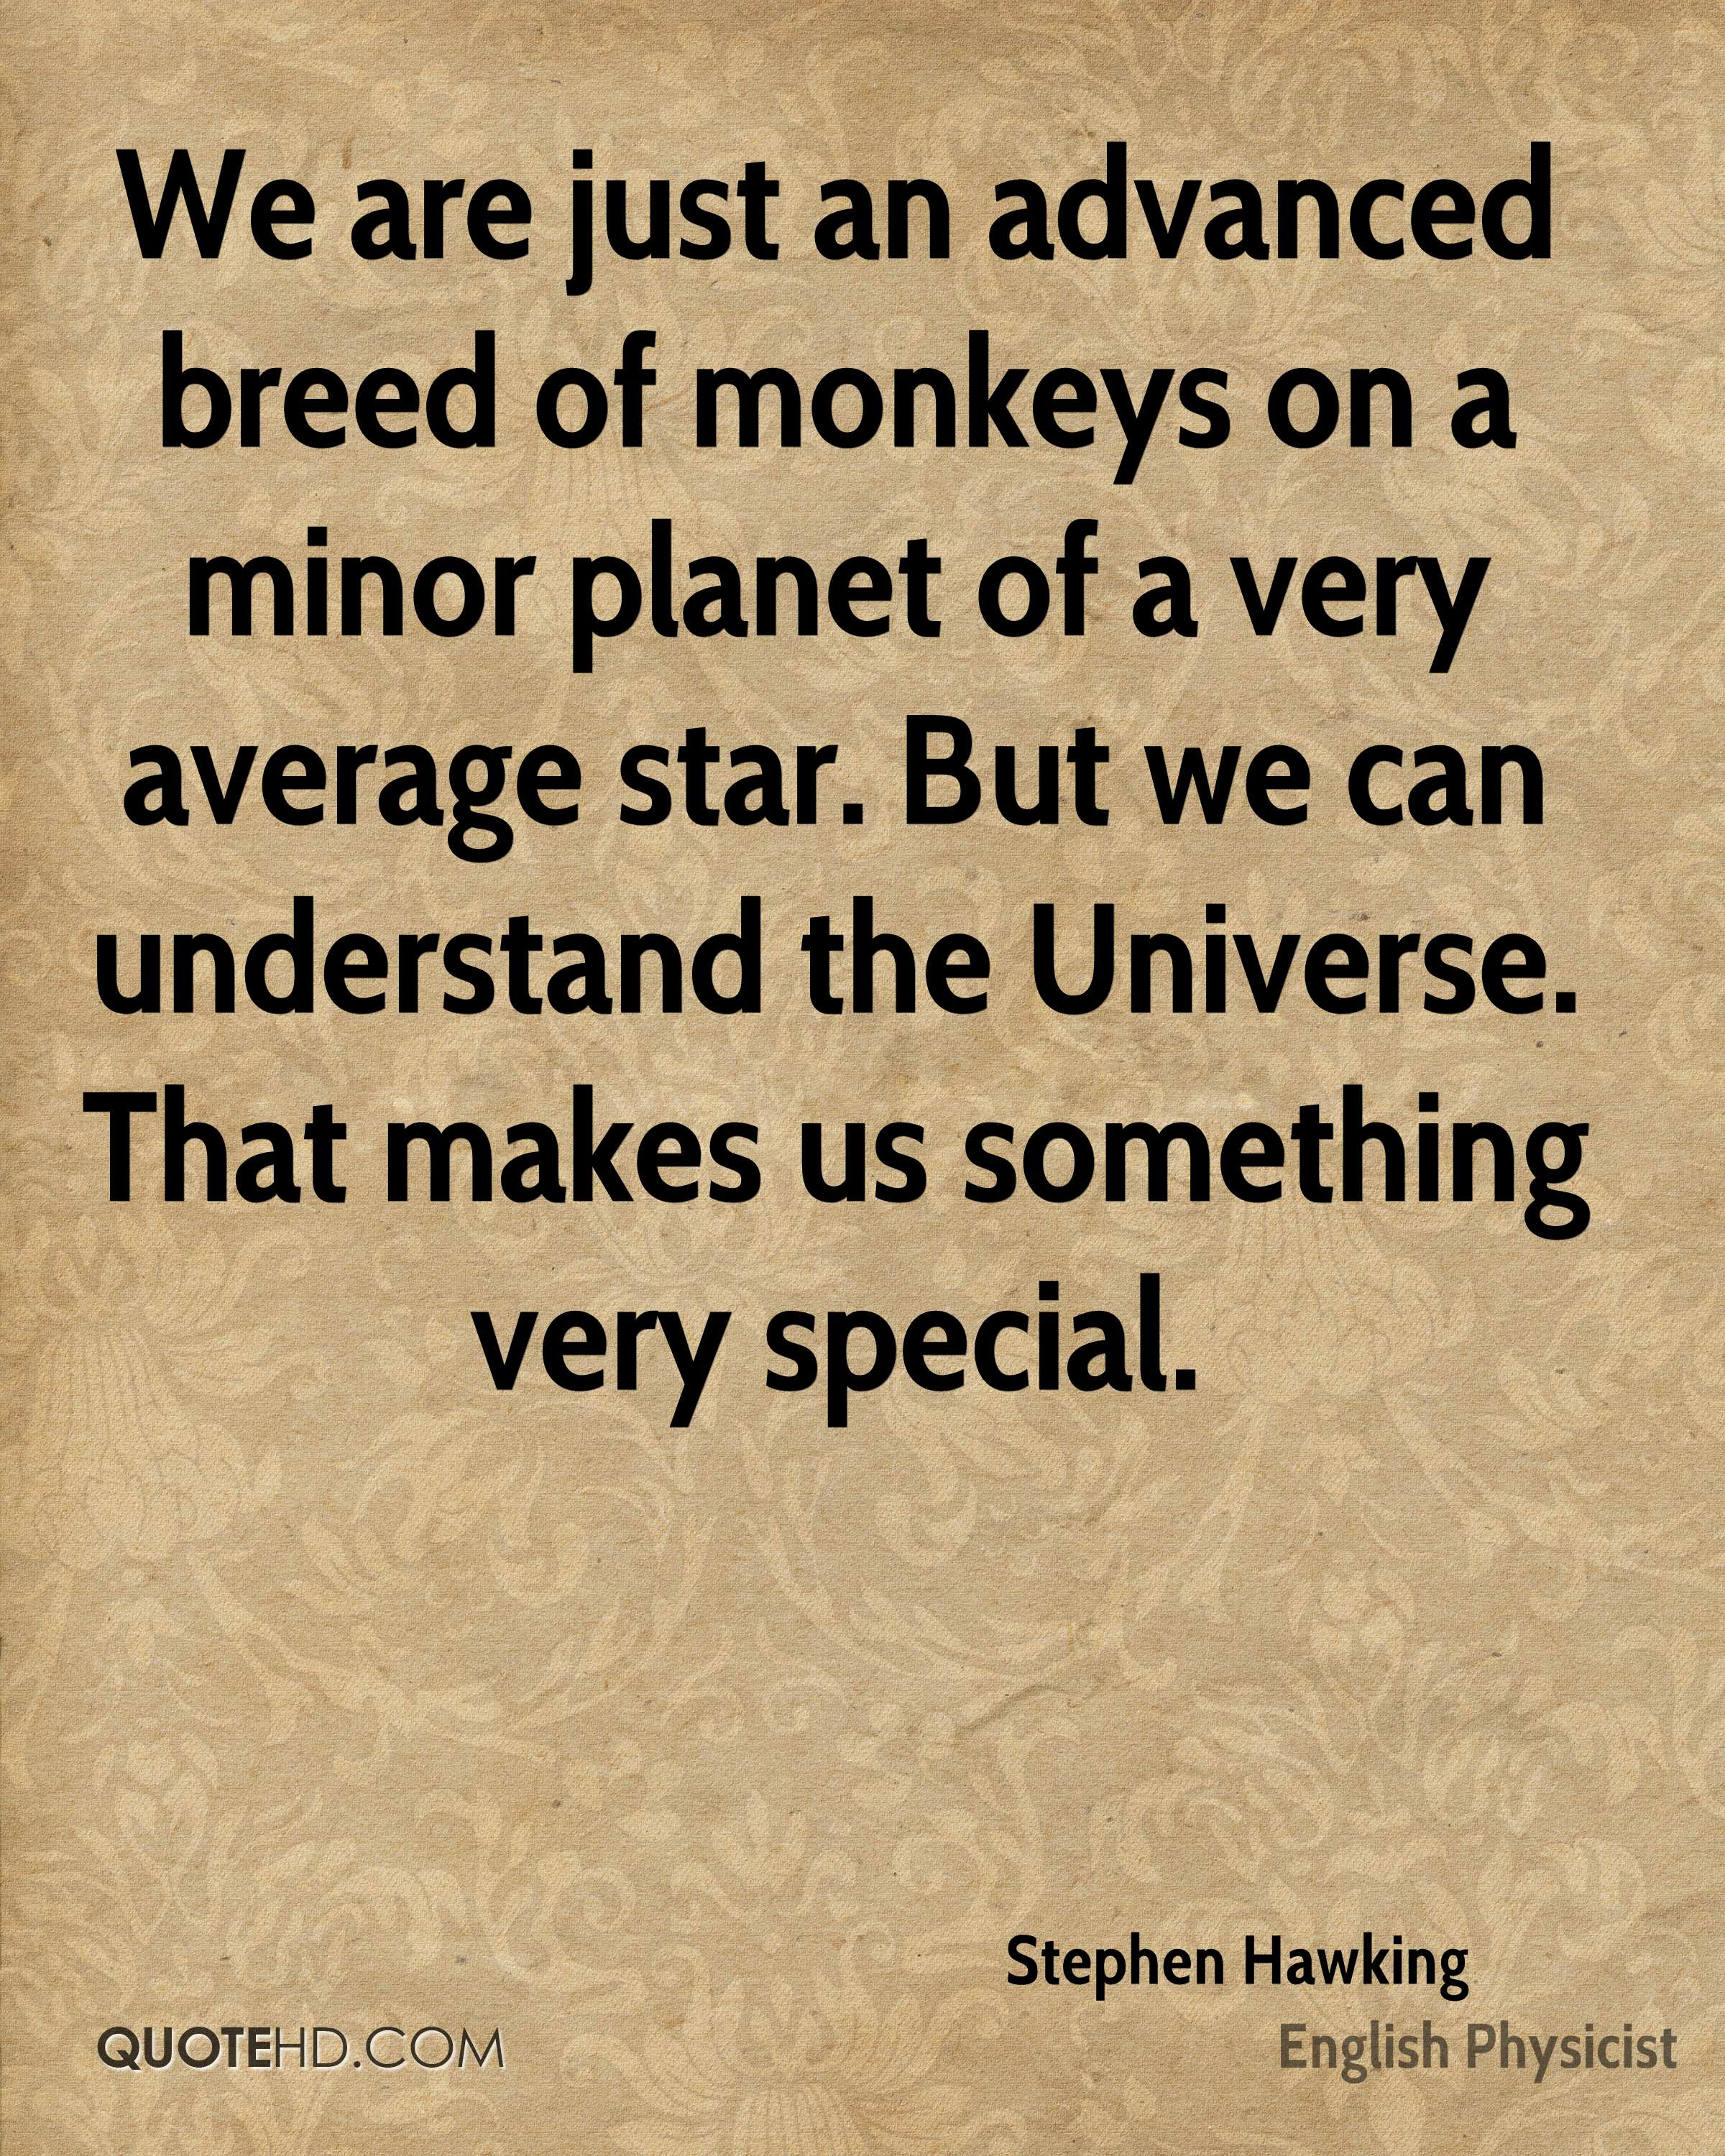 We are just an advanced breed of monkeys on a minor planet of a very average star. But we can understand the Universe. That makes us something very special.